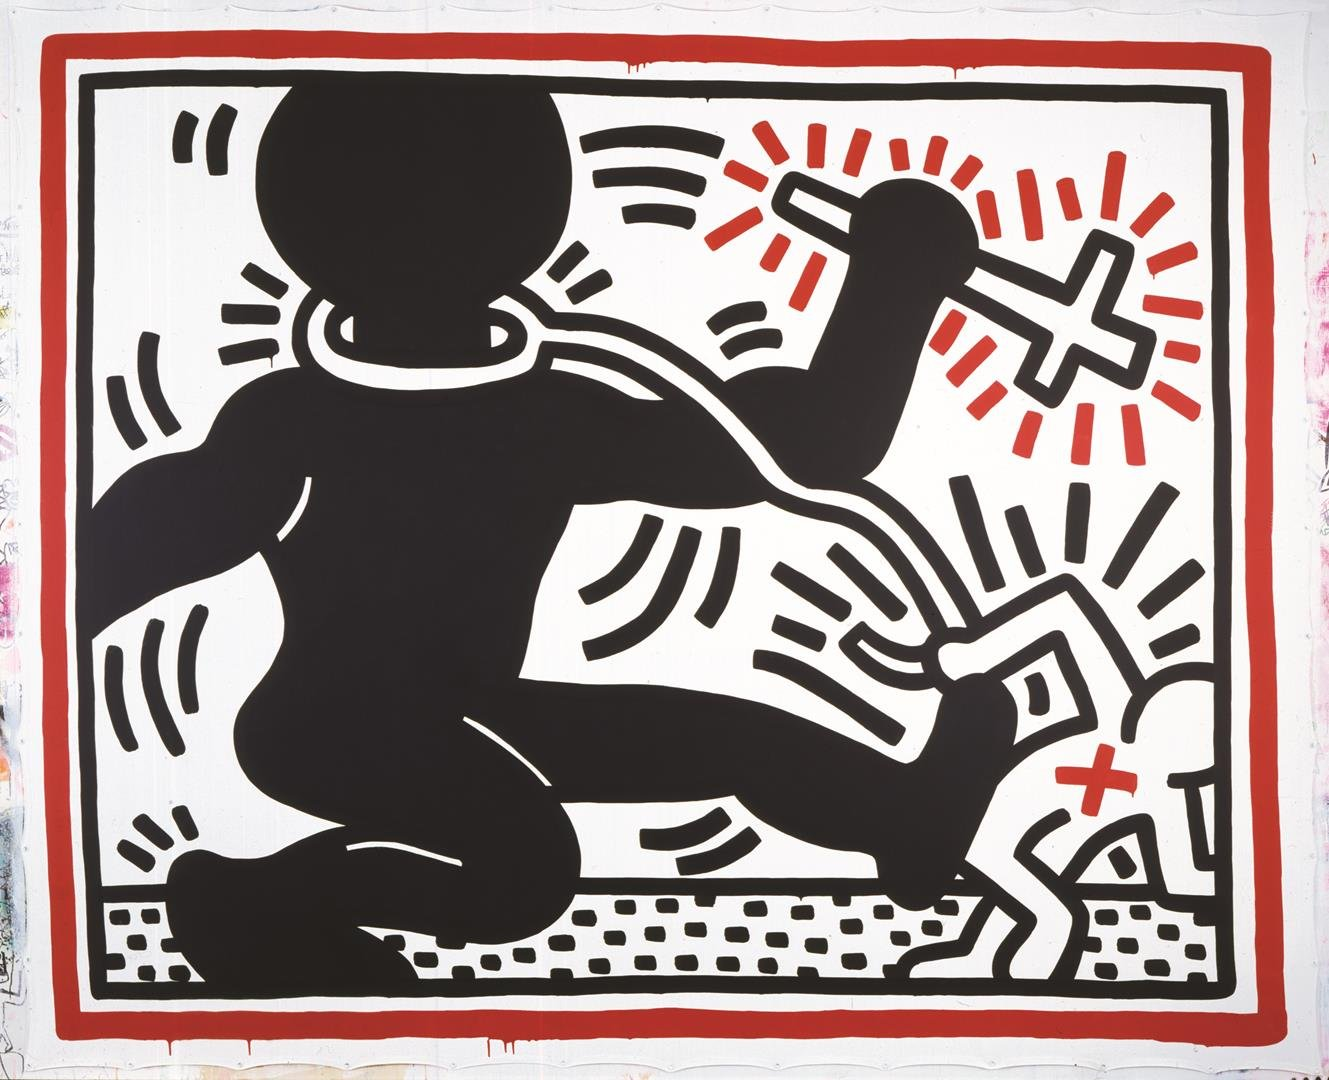 04_Keith Haring_Untitled_1984©Keith Haring Foundation-LR.jpg